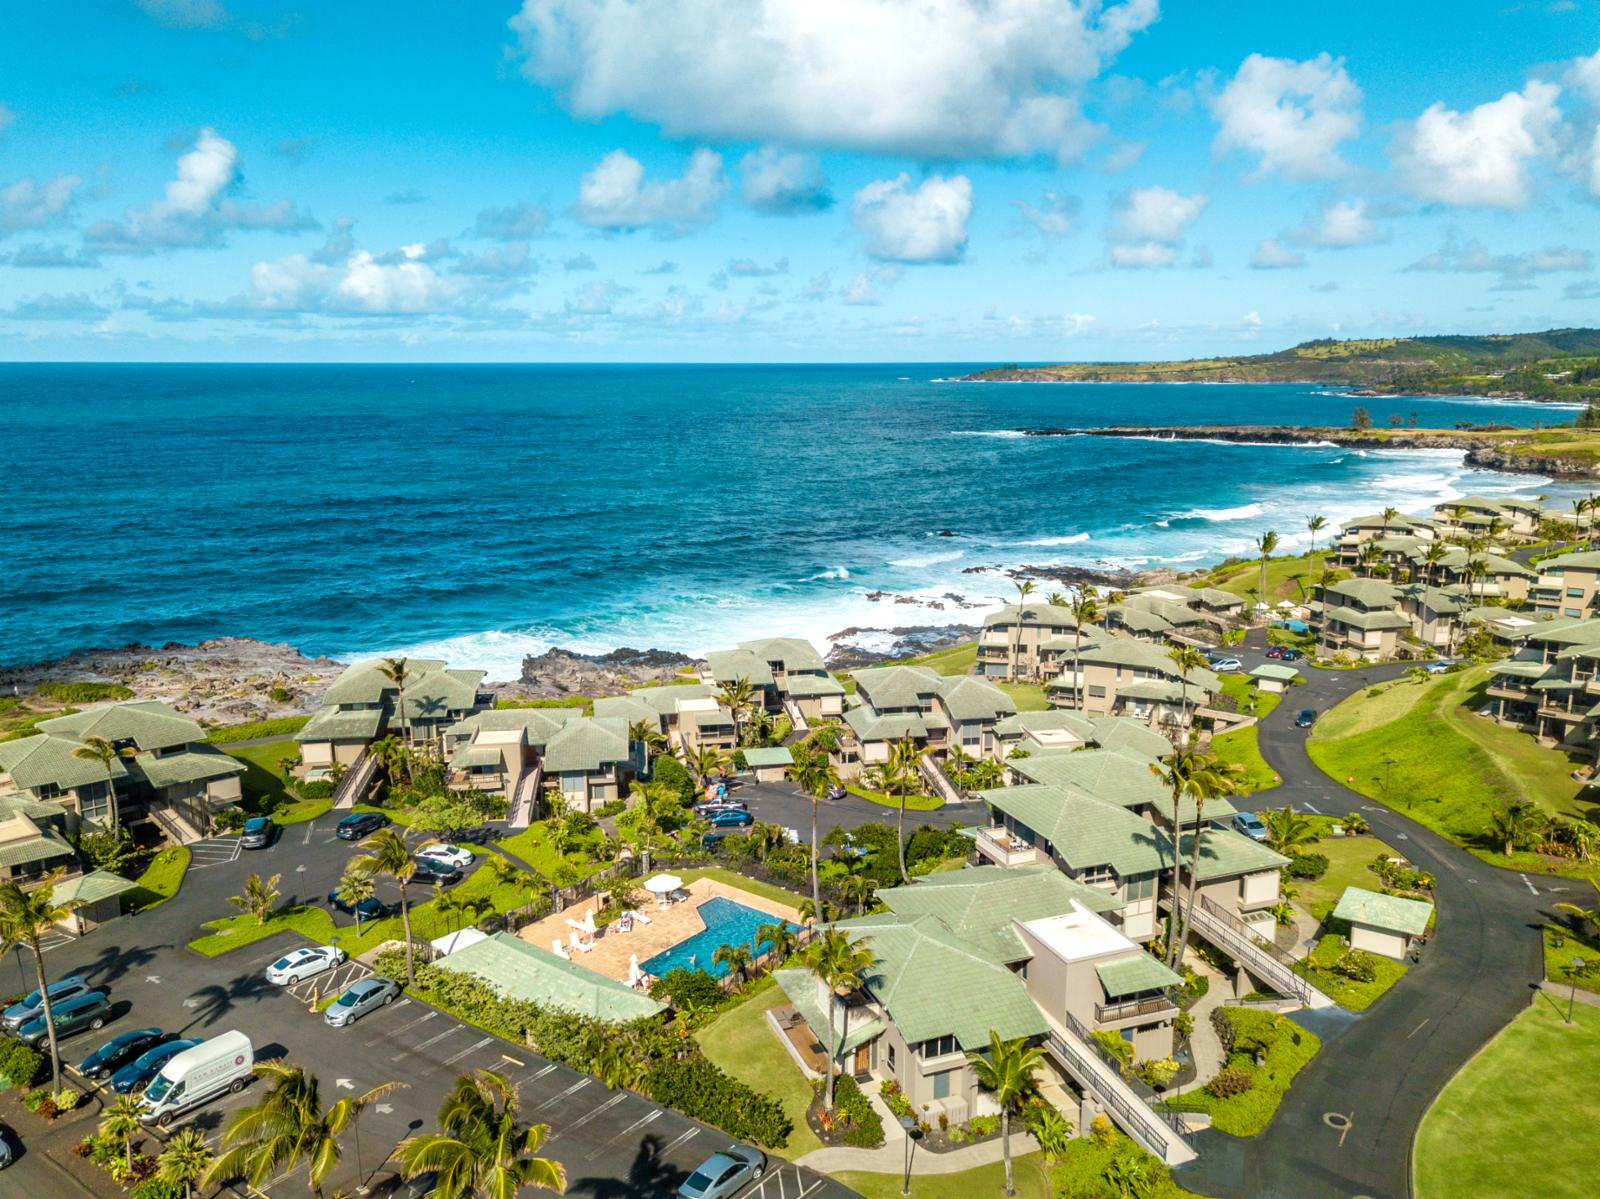 The Kapalua Bay Villas are a stunning costal community built with luxury accommodations